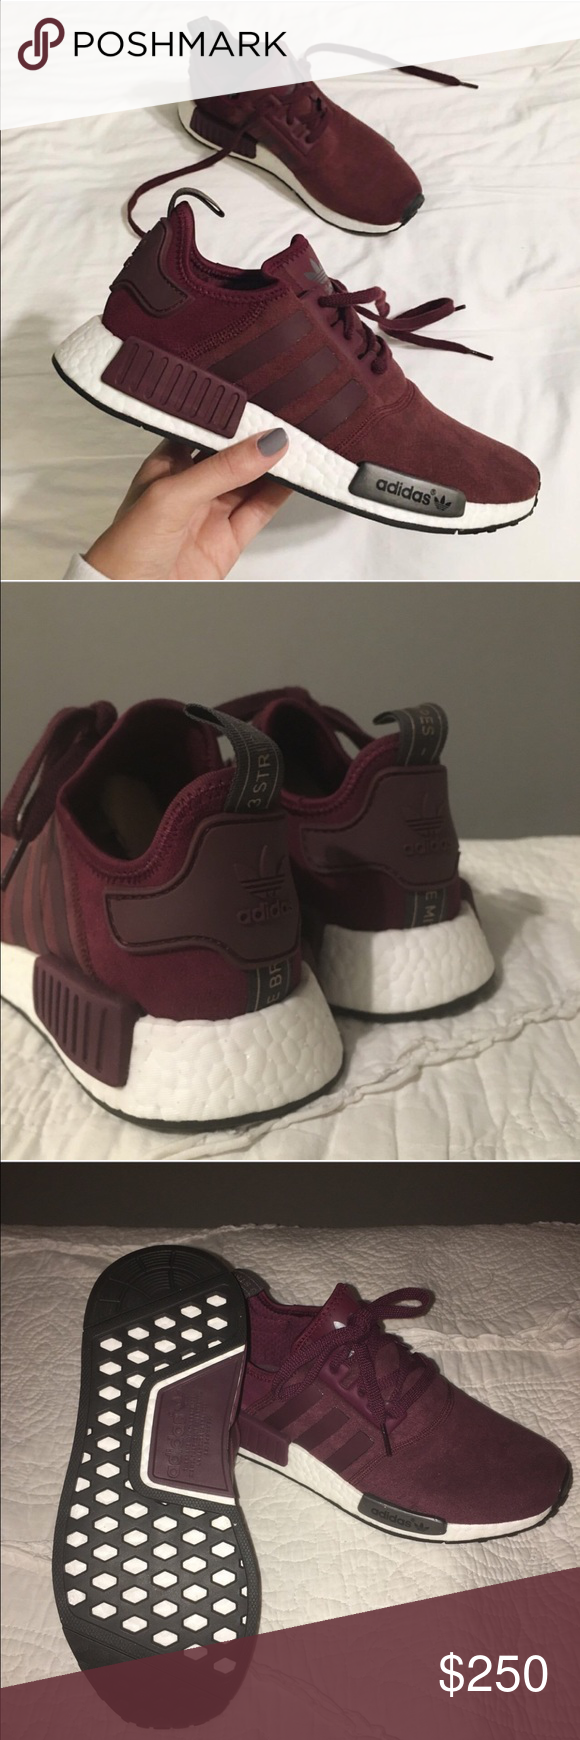 Adidas NMD Hard to find Adidas NMD in